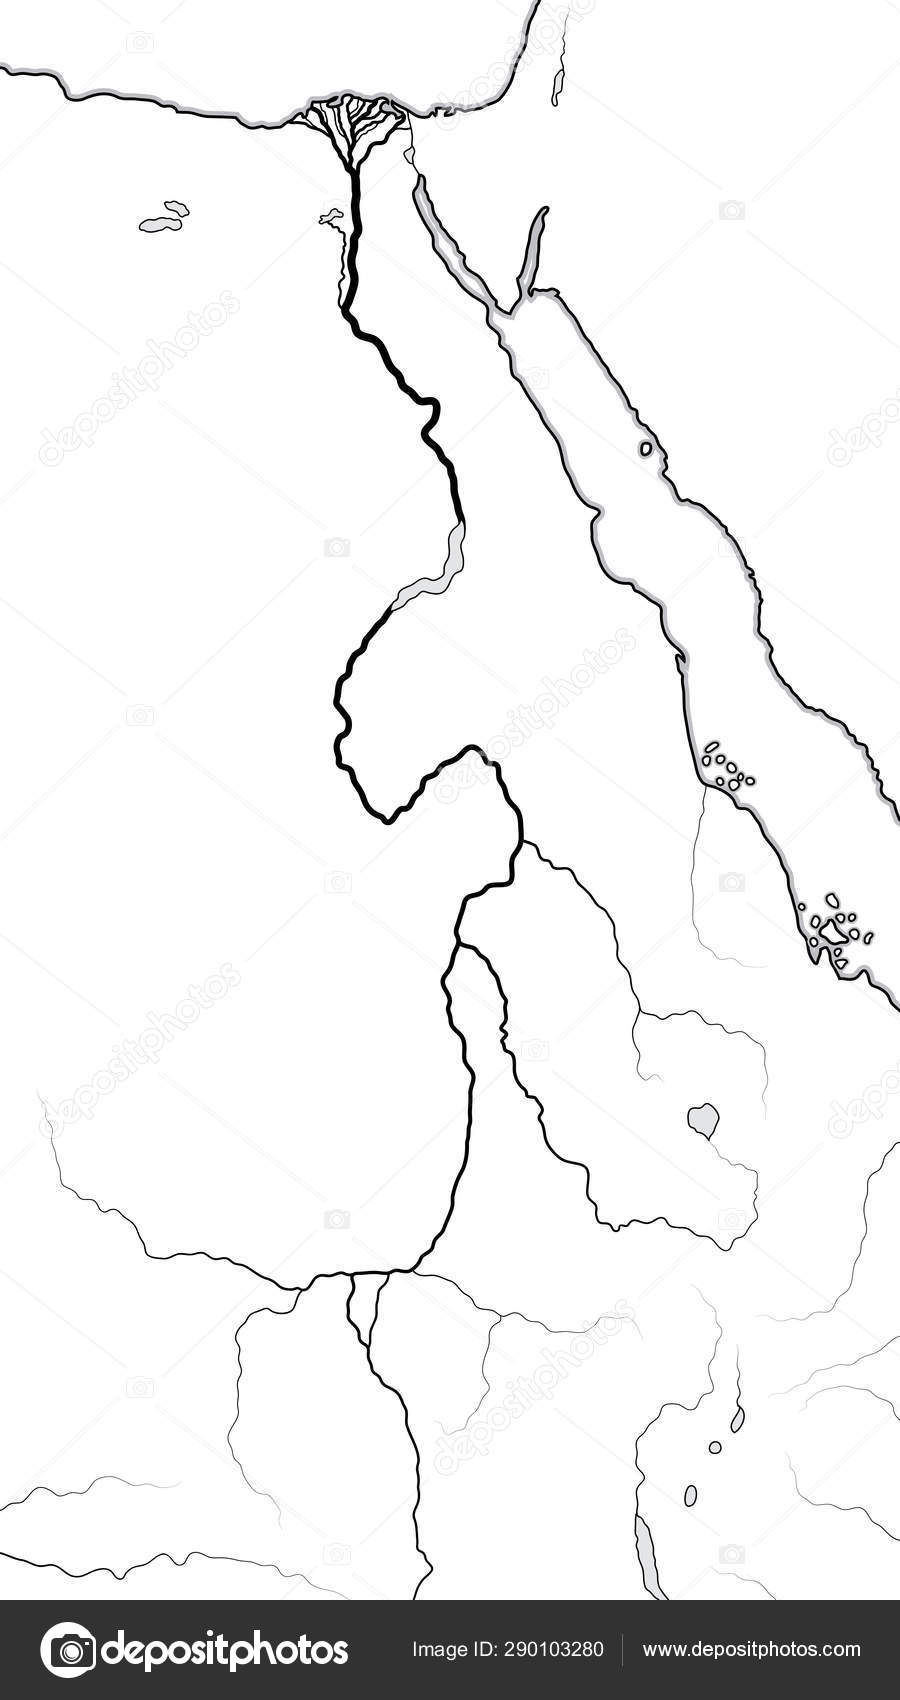 Image of: World Map Of The Nile River Valley Delta Africa Ancient Egypt Lower Egypt Upper Egypt